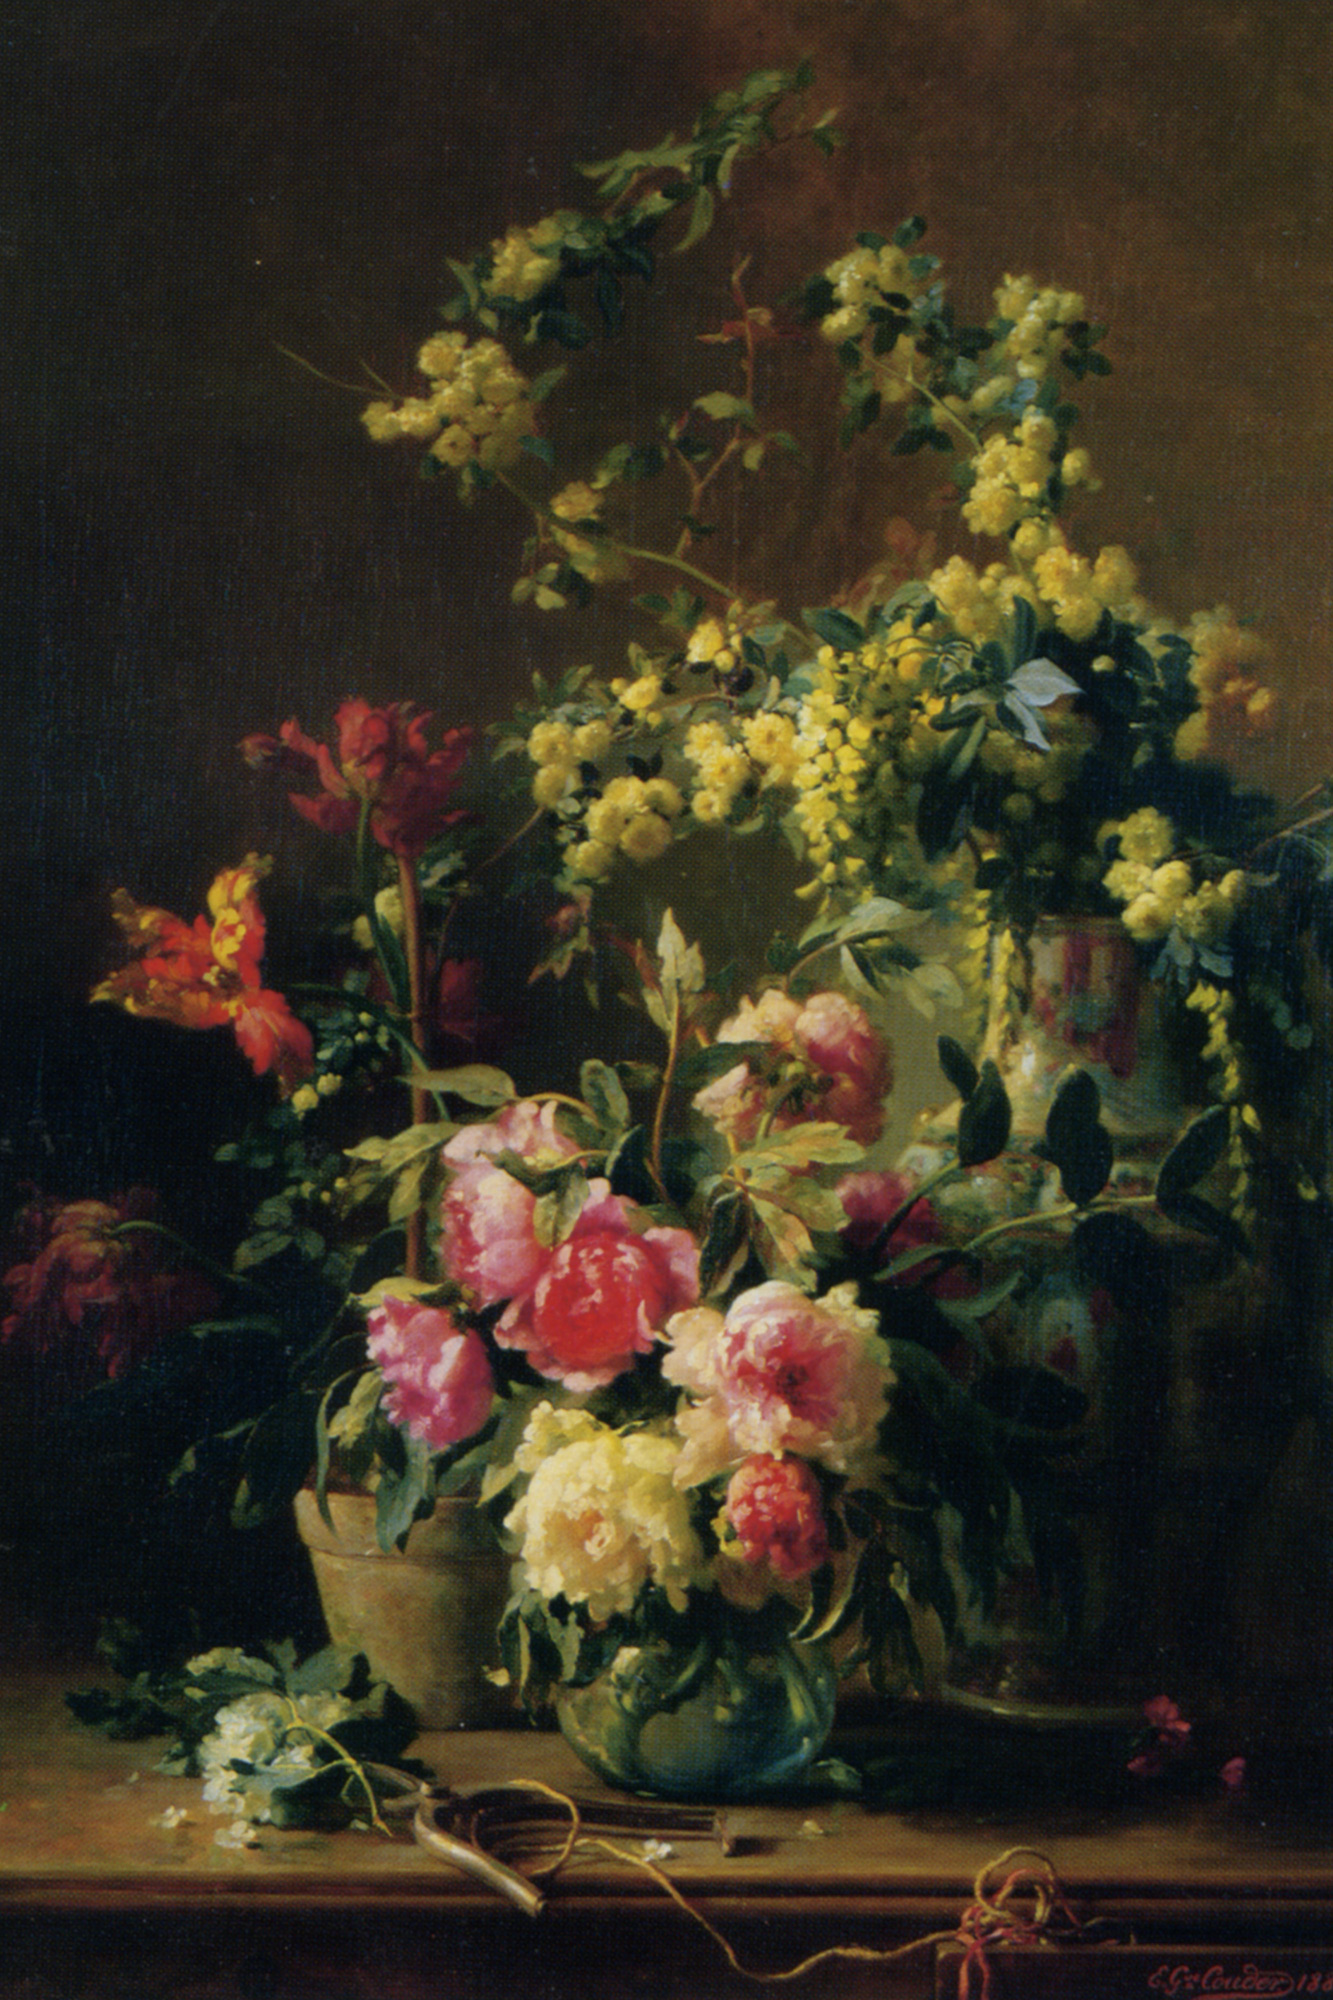 Still Life with Peonies :: Gustave Emile Couder - flowers in painting ôîòî